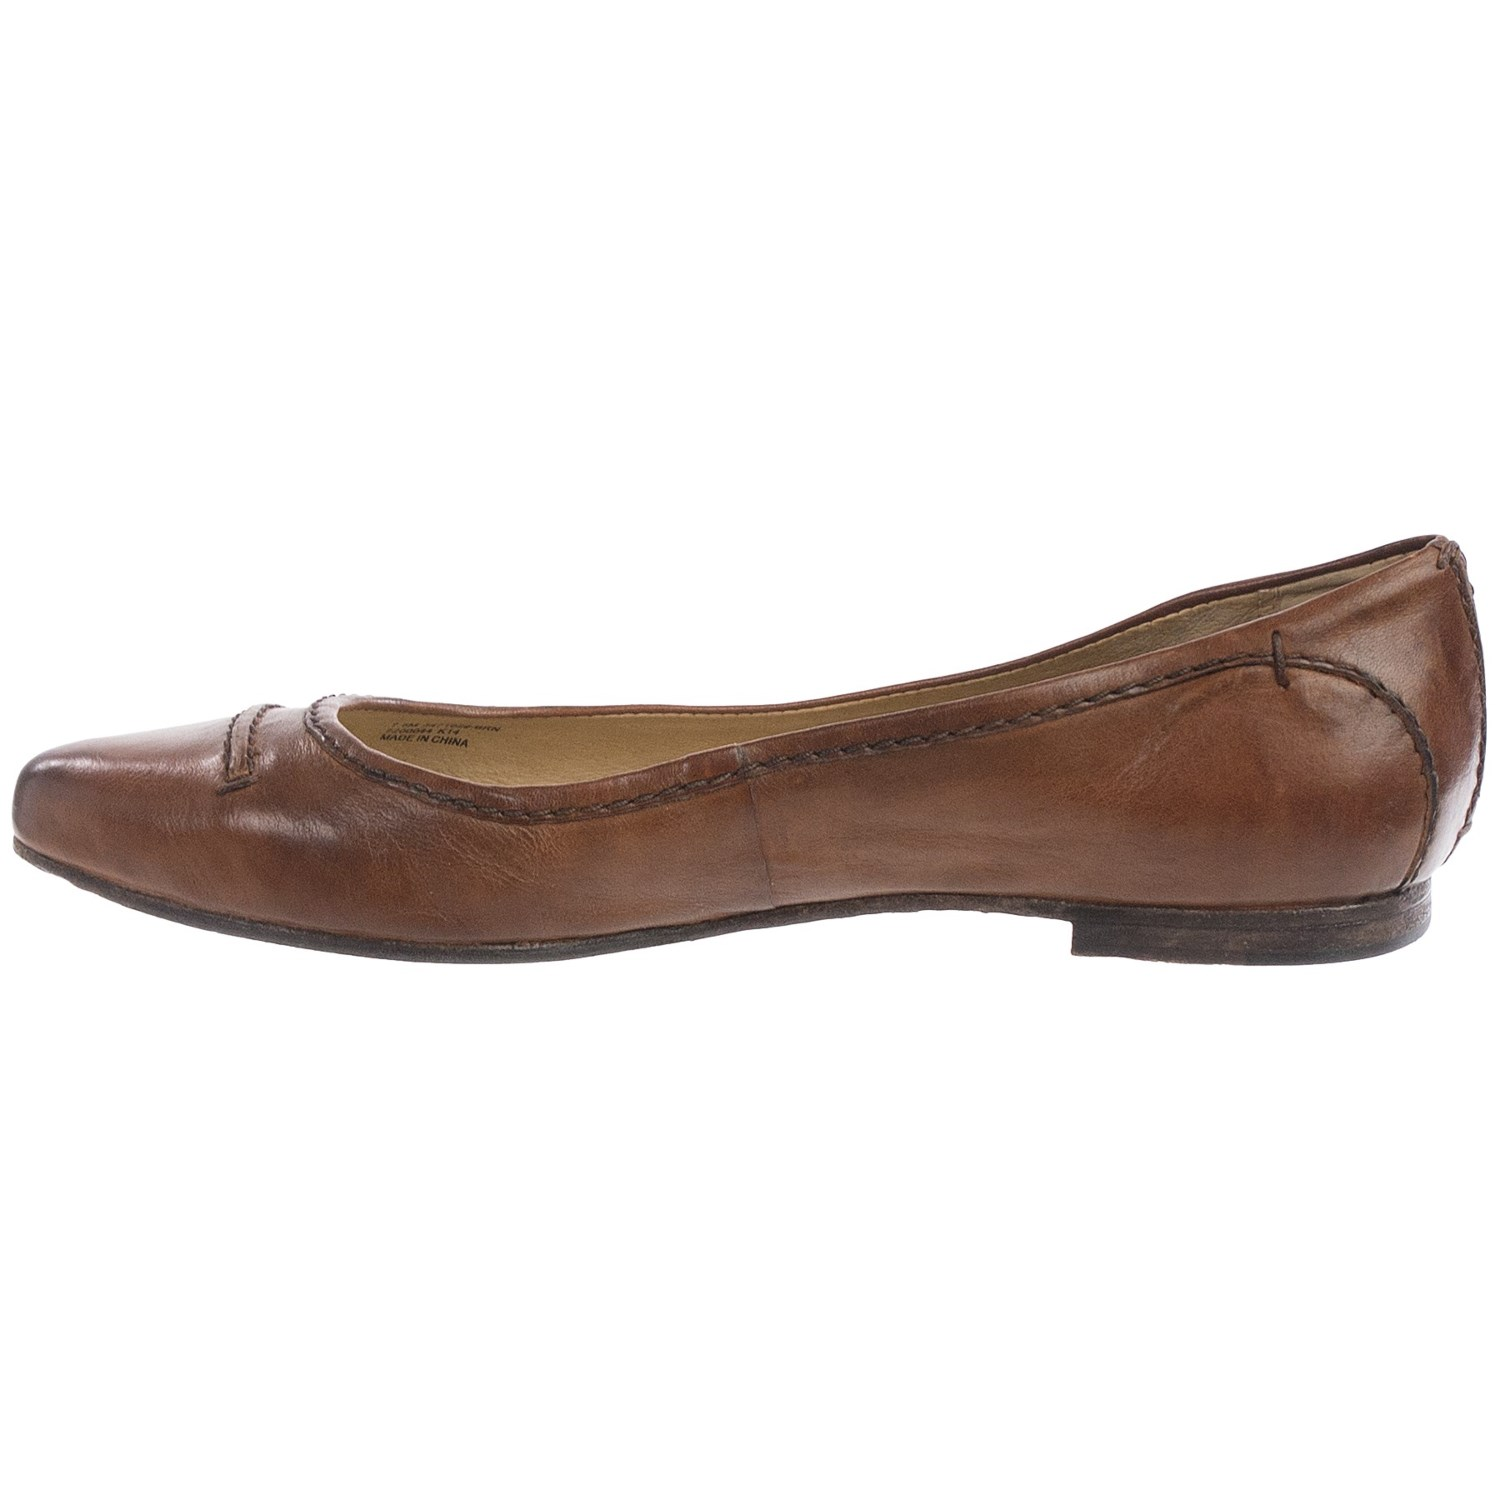 Foot Itch From Dress Shoes